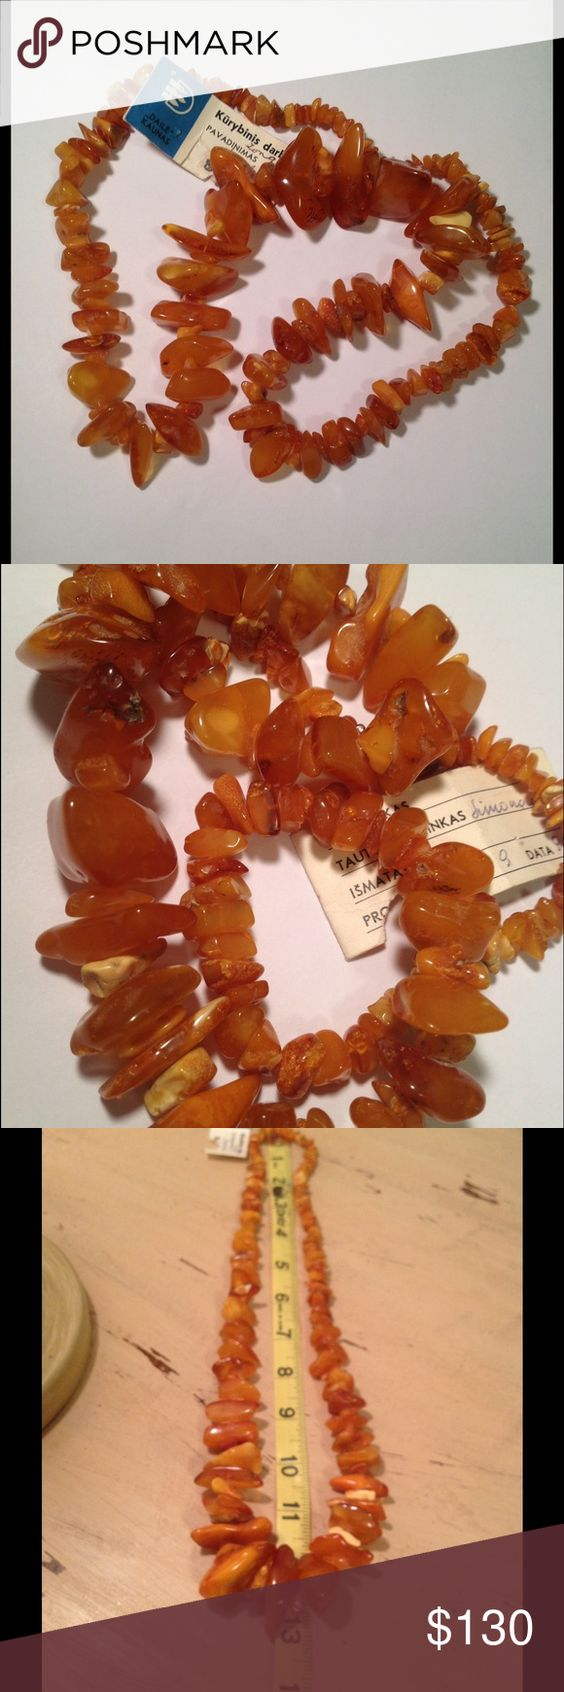 """Vintage Lithuanian Amber Necklace Beautiful vintage graduated natural Baltic Amber necklace from Lithuania. (The greatest source of the real product). Has a tag on that's in Lithuania that reads """"Art Kaunas creative work"""". This necklace just slips over your head. Great vintage condition. Vintage Jewelry Necklaces"""